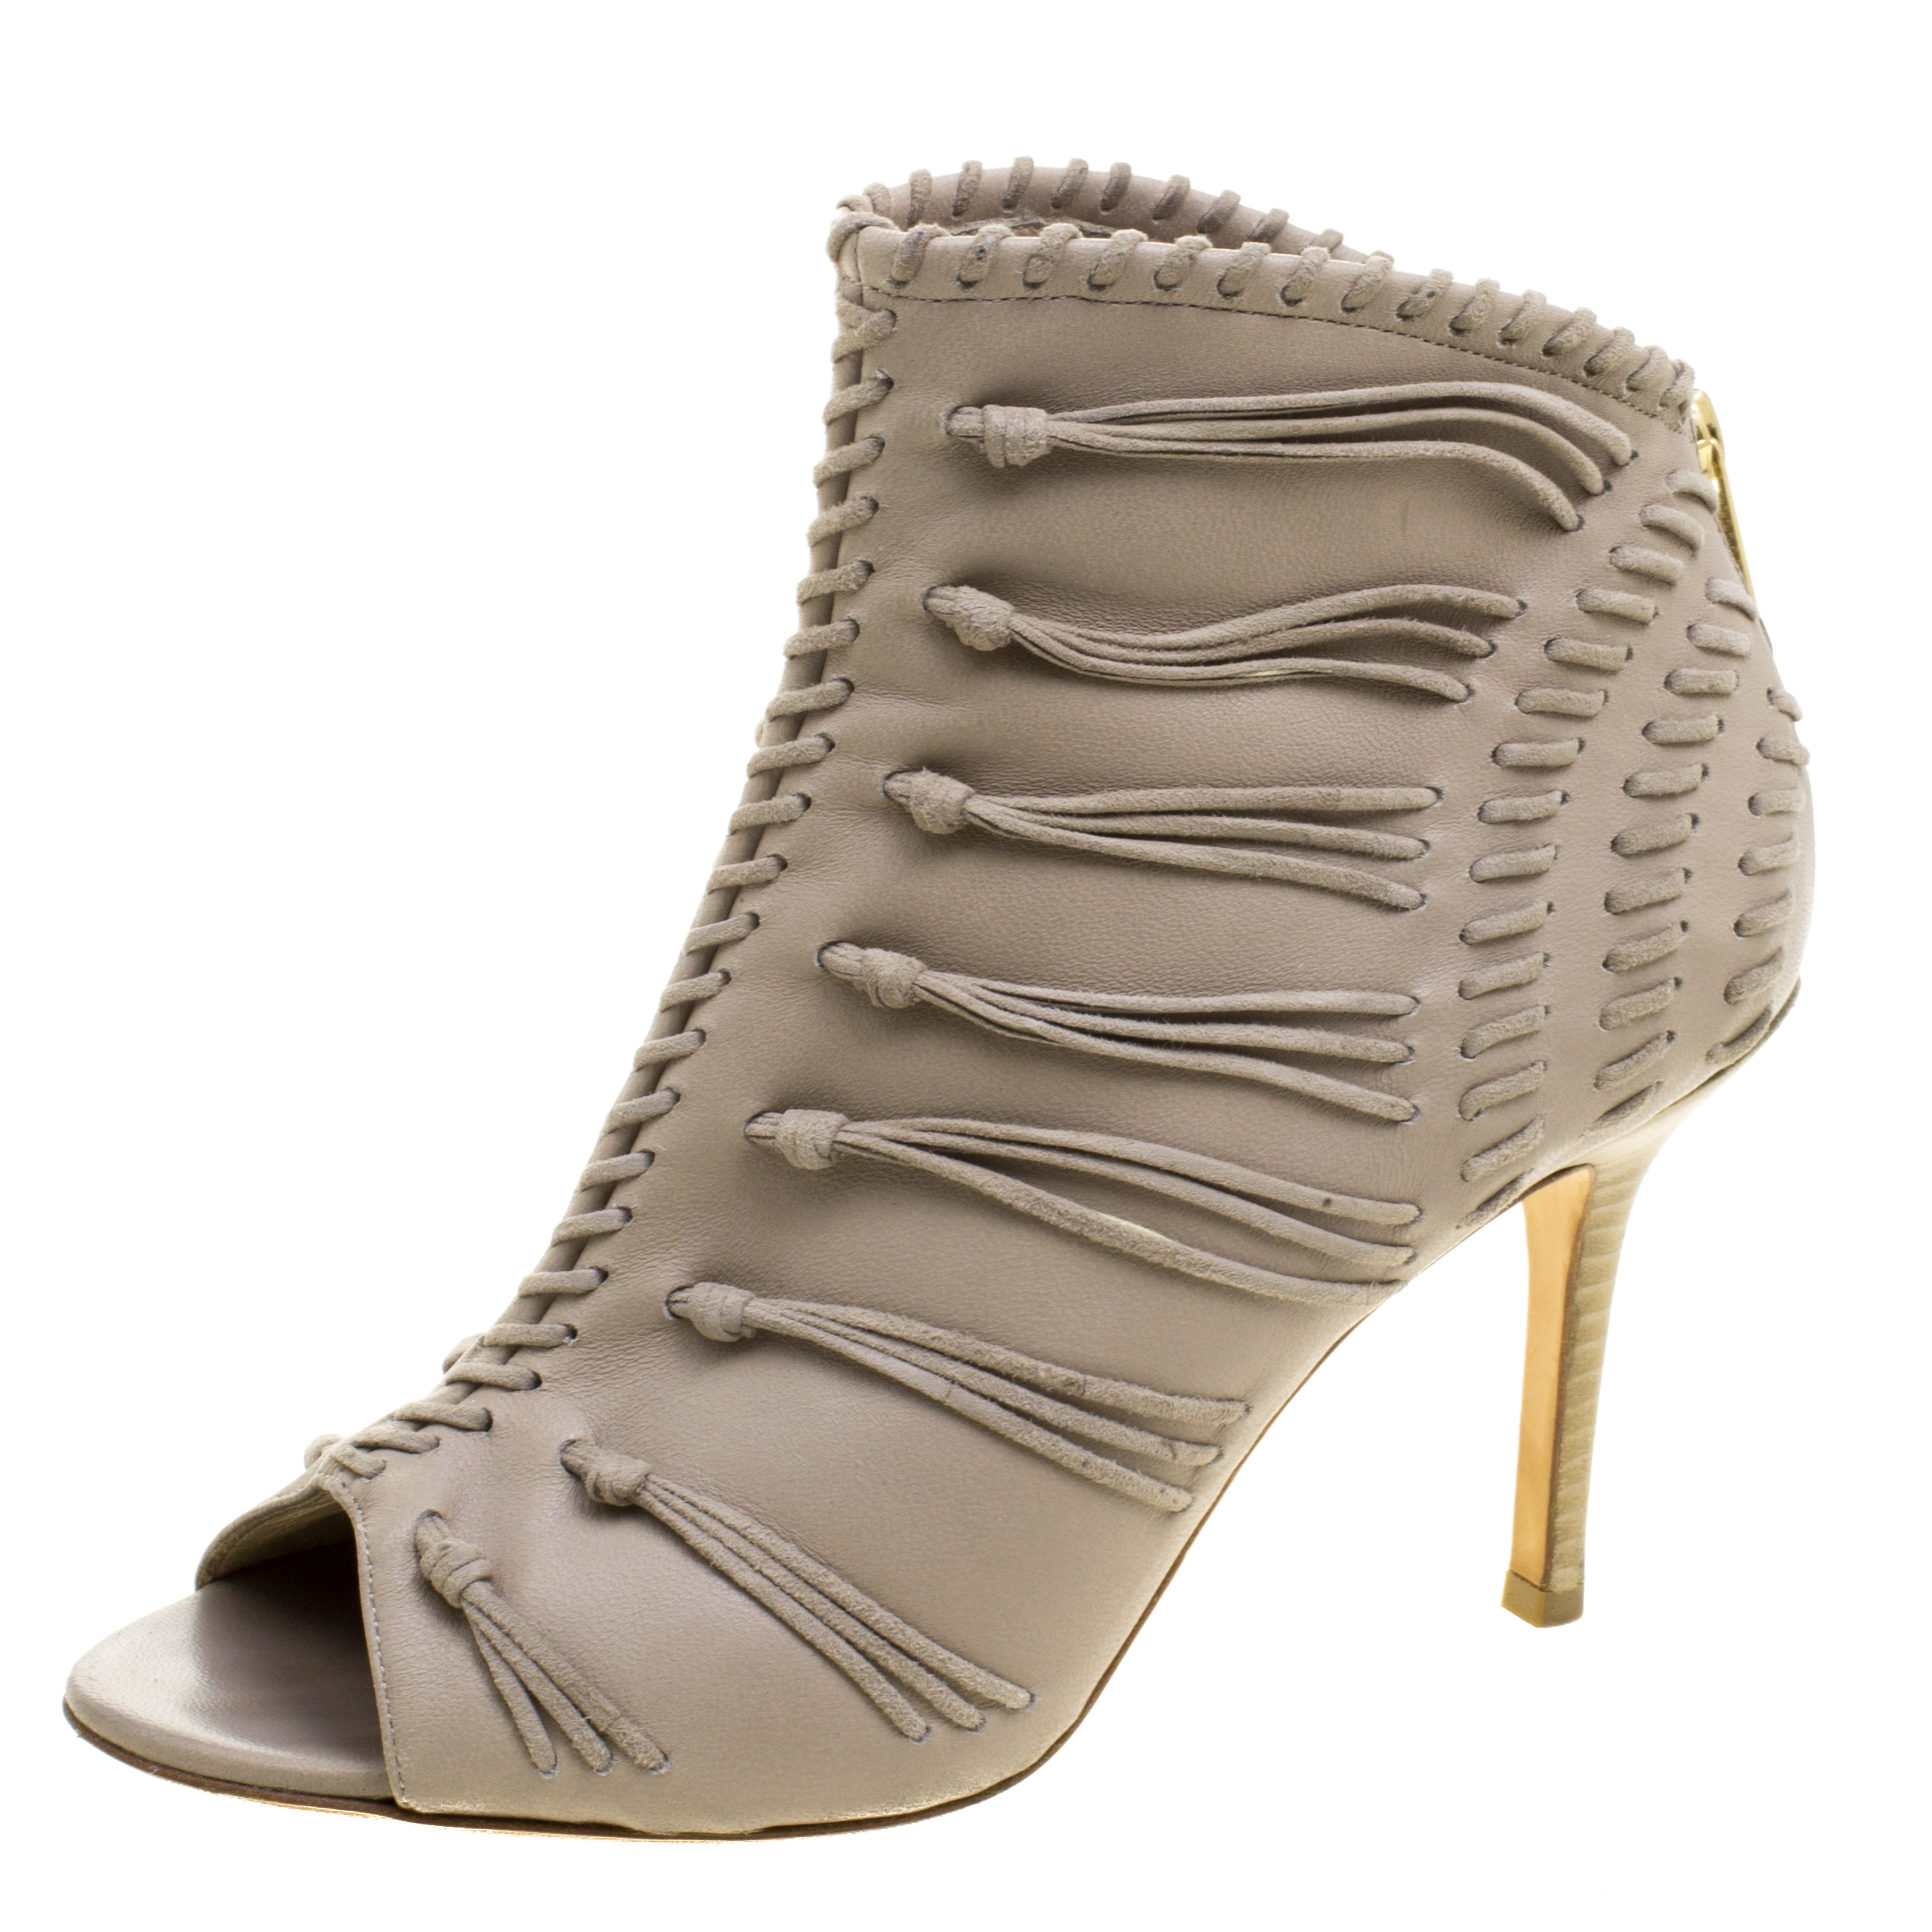 a6d05251c5f1 ... order jimmy choo grey leather and suede gana ankle booties size 38 buy  9adc7 9264a